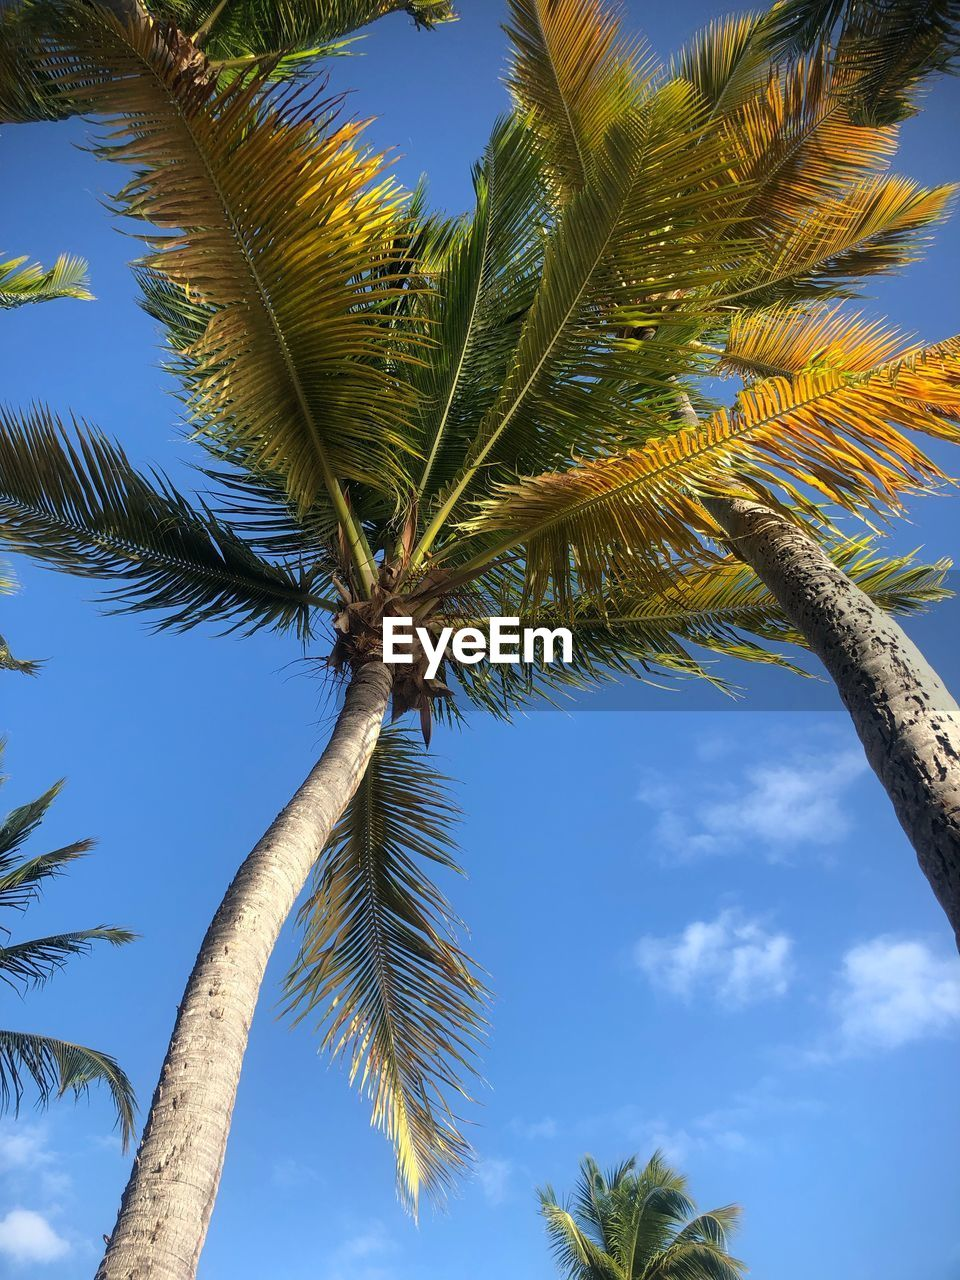 tree, plant, tropical climate, sky, growth, palm tree, tree trunk, trunk, low angle view, nature, beauty in nature, green color, day, leaf, no people, coconut palm tree, blue, cloud - sky, branch, outdoors, tropical tree, palm leaf